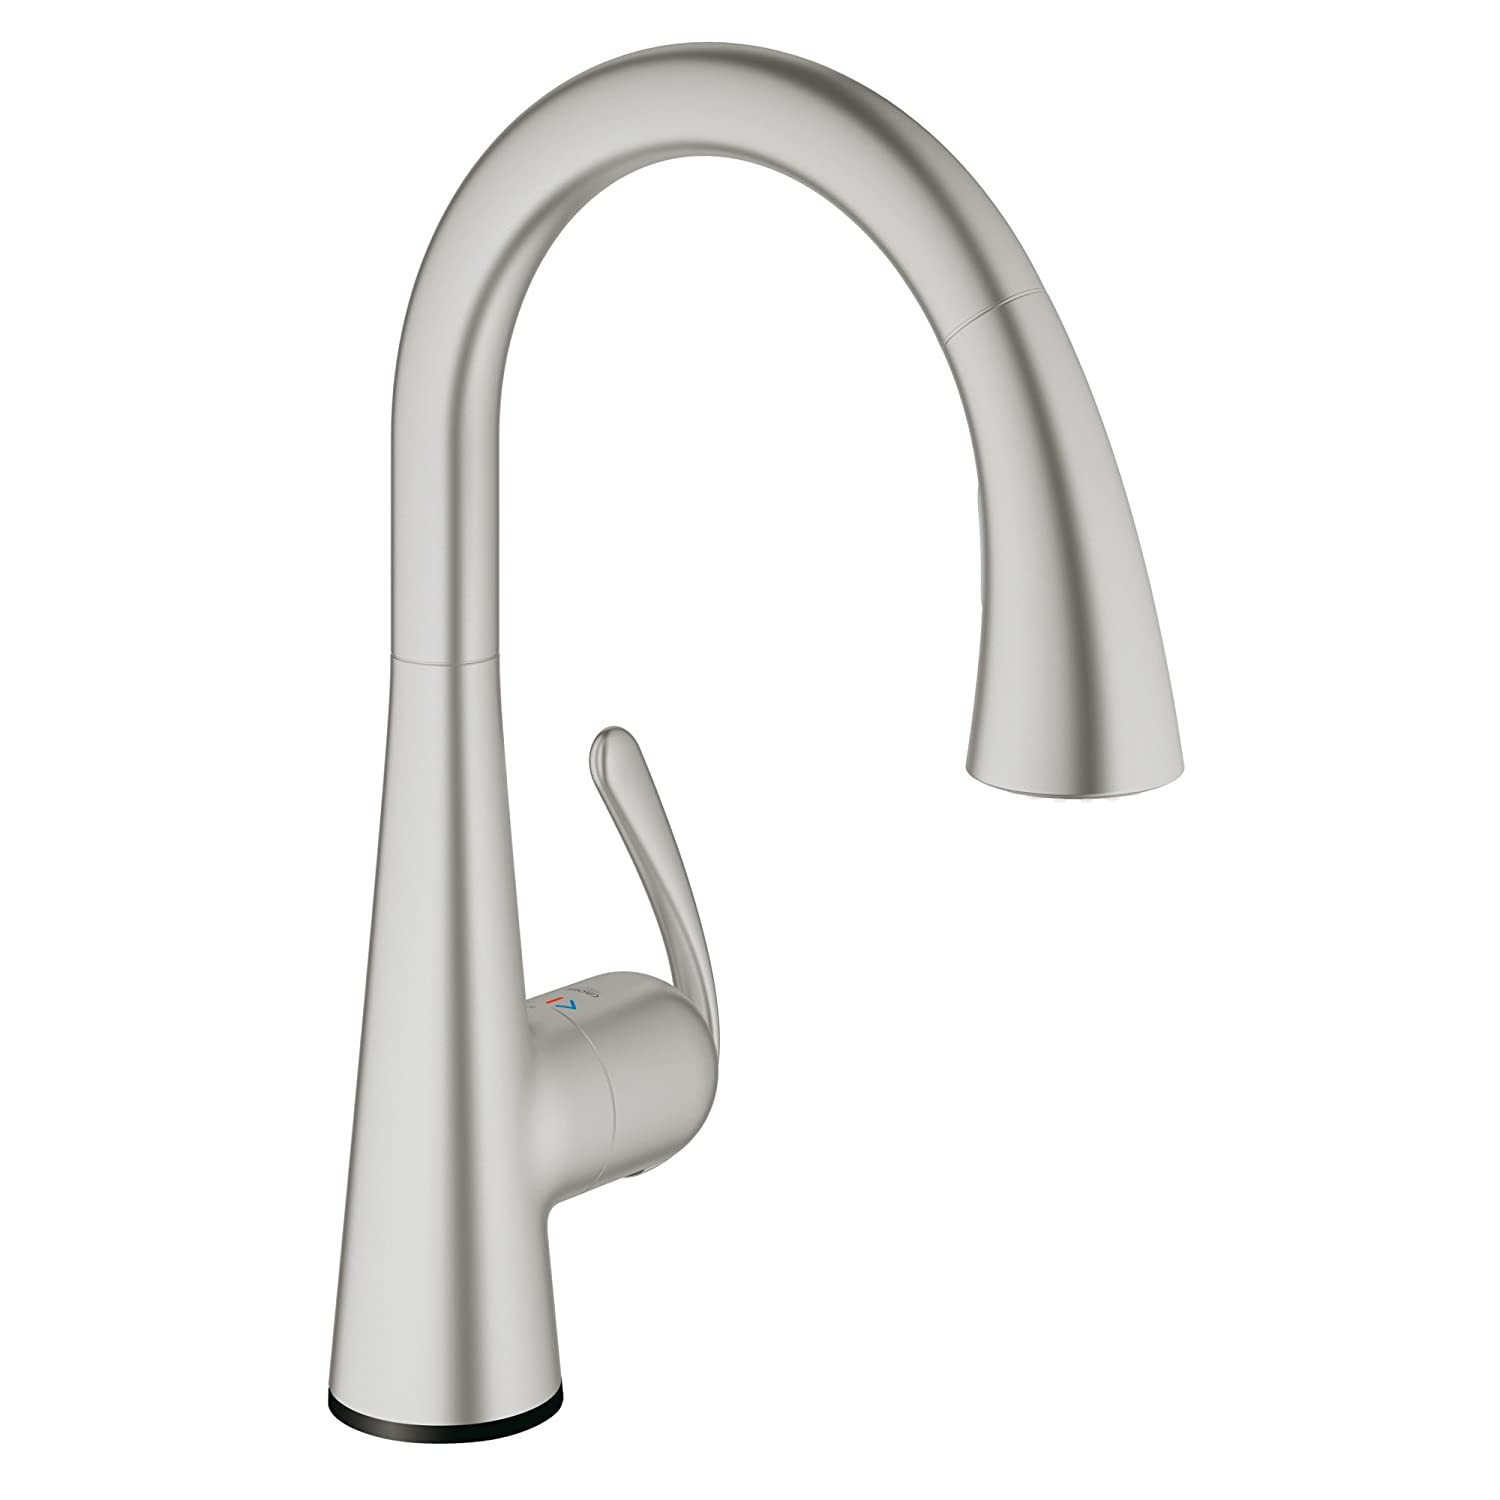 Ladylux Touch Electronic Single handle With Pull-out Dual Spray, 30205DC1 - Super Steel